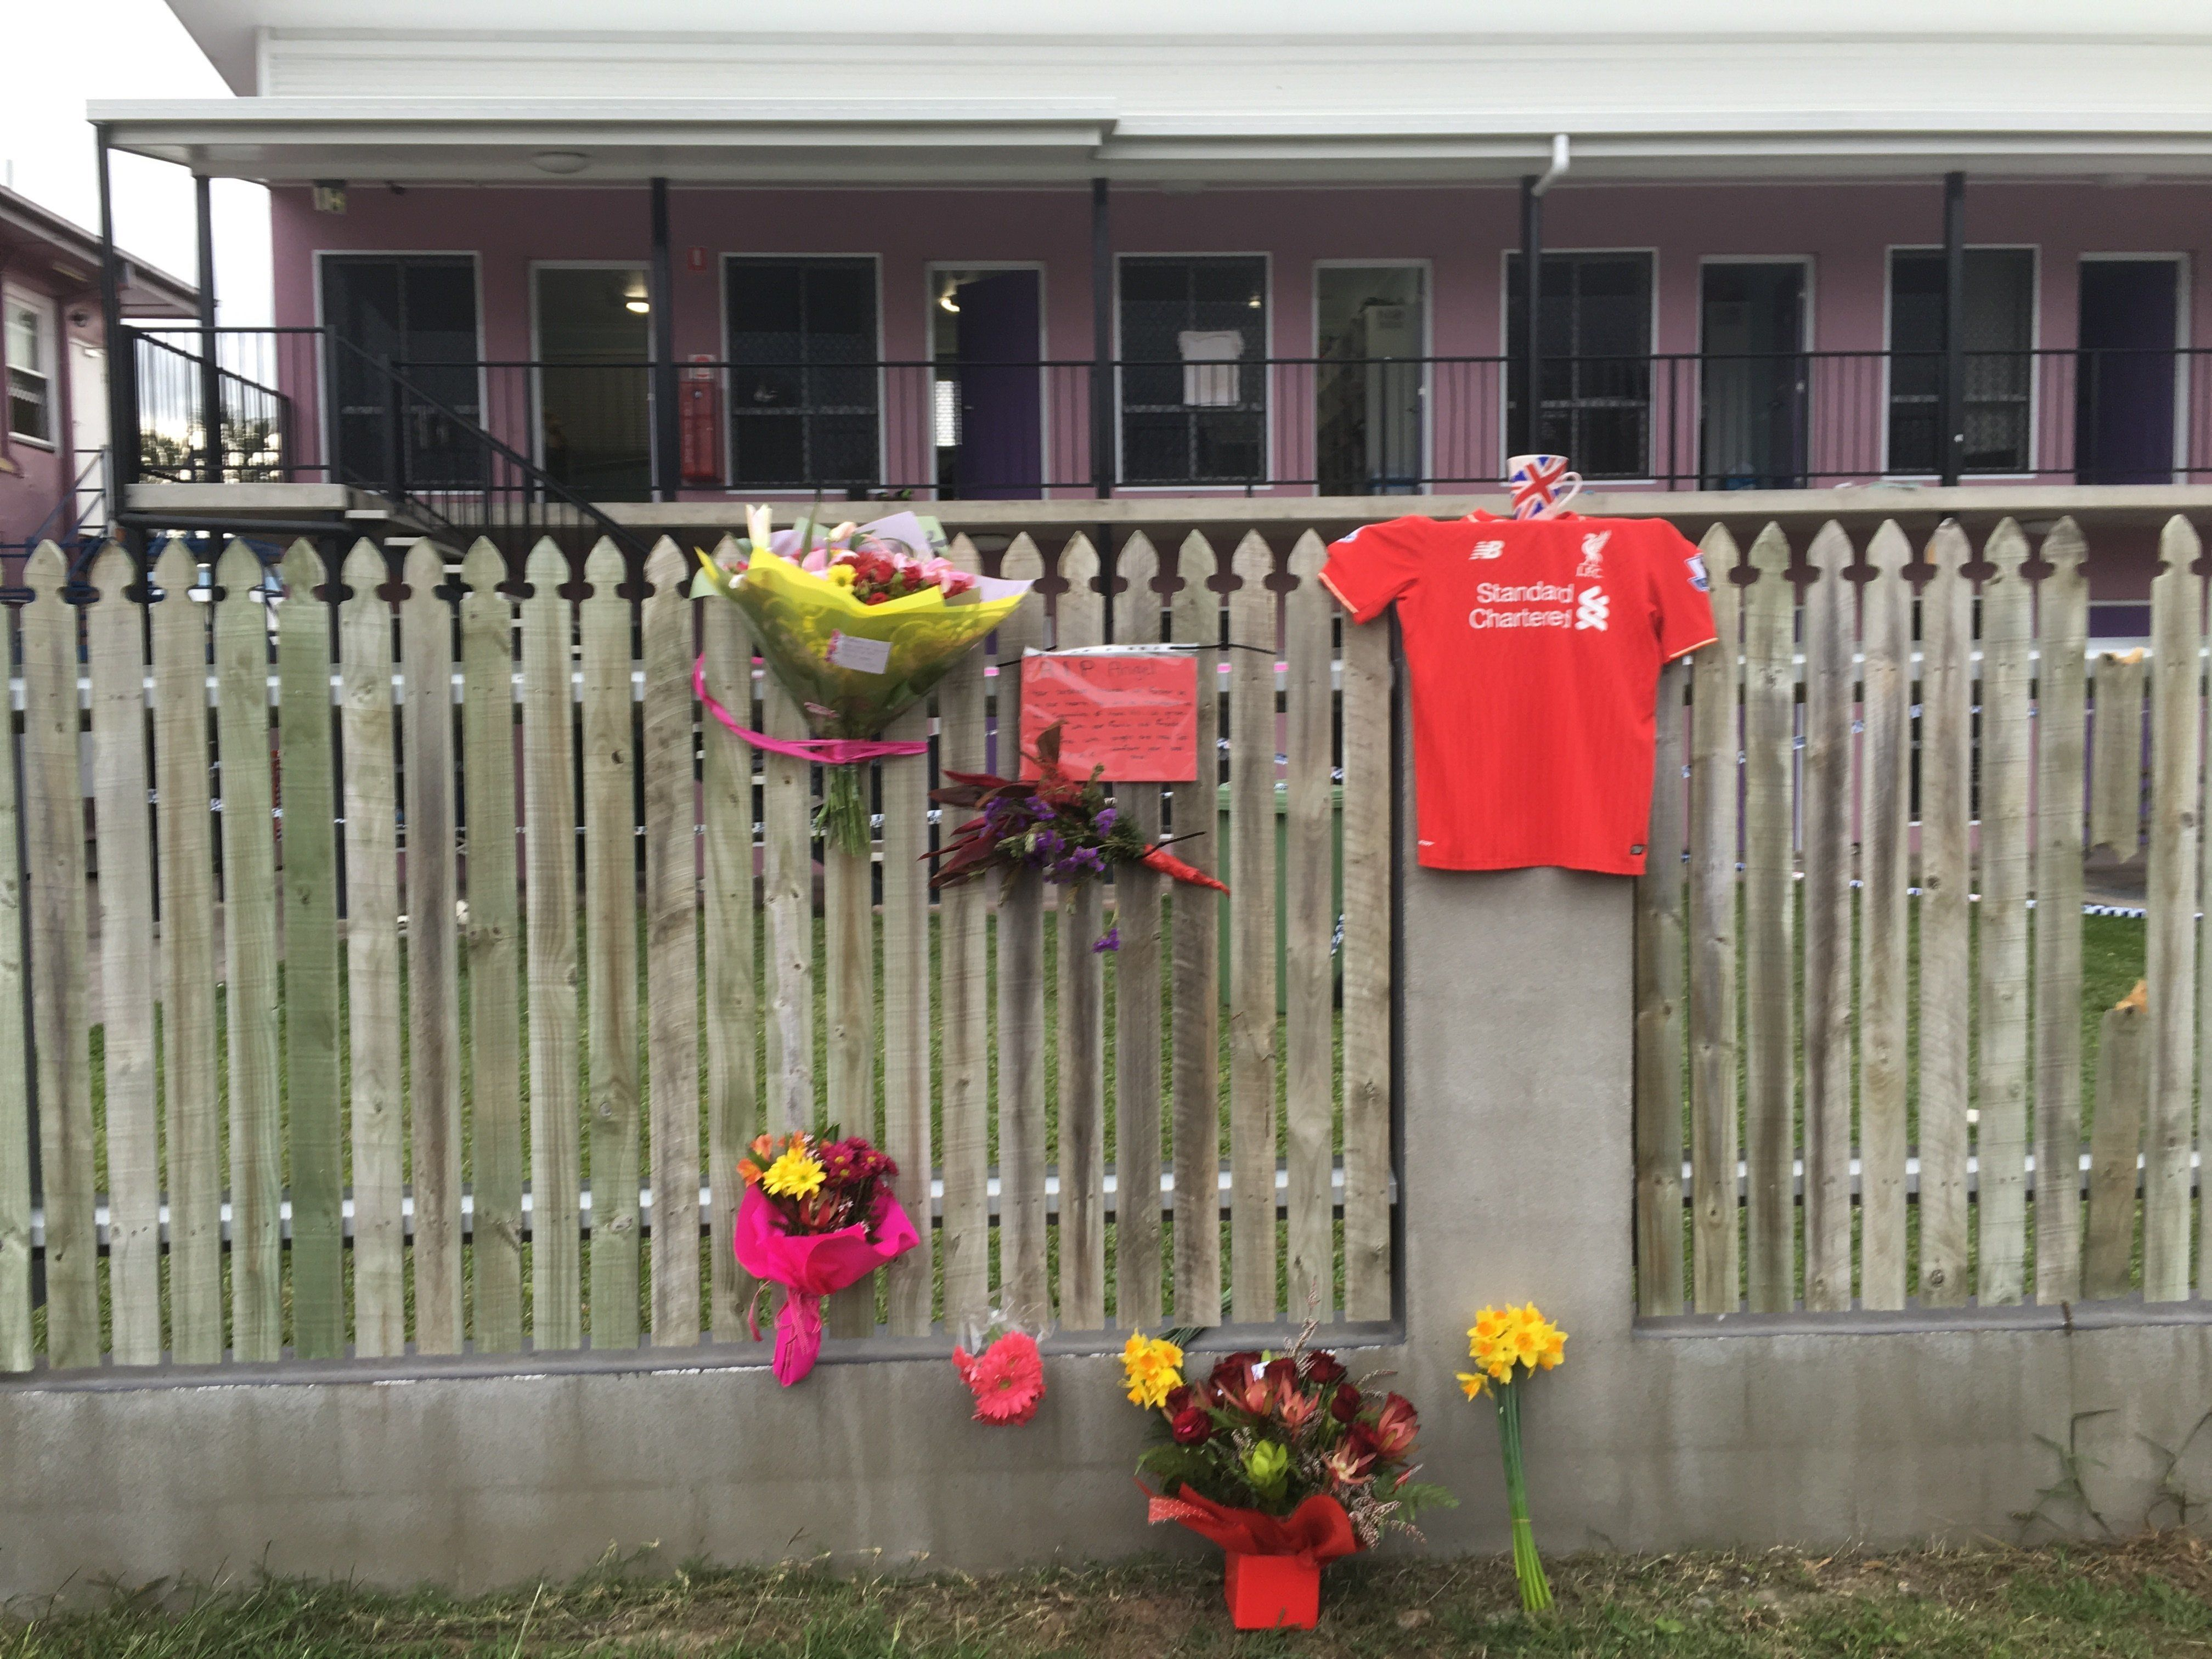 Flowers and well wishes are placed on a fence outside the hostel where British backpacker Mia Ayliffe-Chung, 21, was stabbed multiple times and killed on August 23, 2016 in Home Hill, a rural town in north Queensland state, on August 25, 2016.   A Frenchman was on August 25, 2016 charged with her murder but police found he showed no signs of radicalisation despite saying 'Allahu Akbar' during the attack. / AFP / STR        (Photo credit should read STR/AFP/Getty Images)